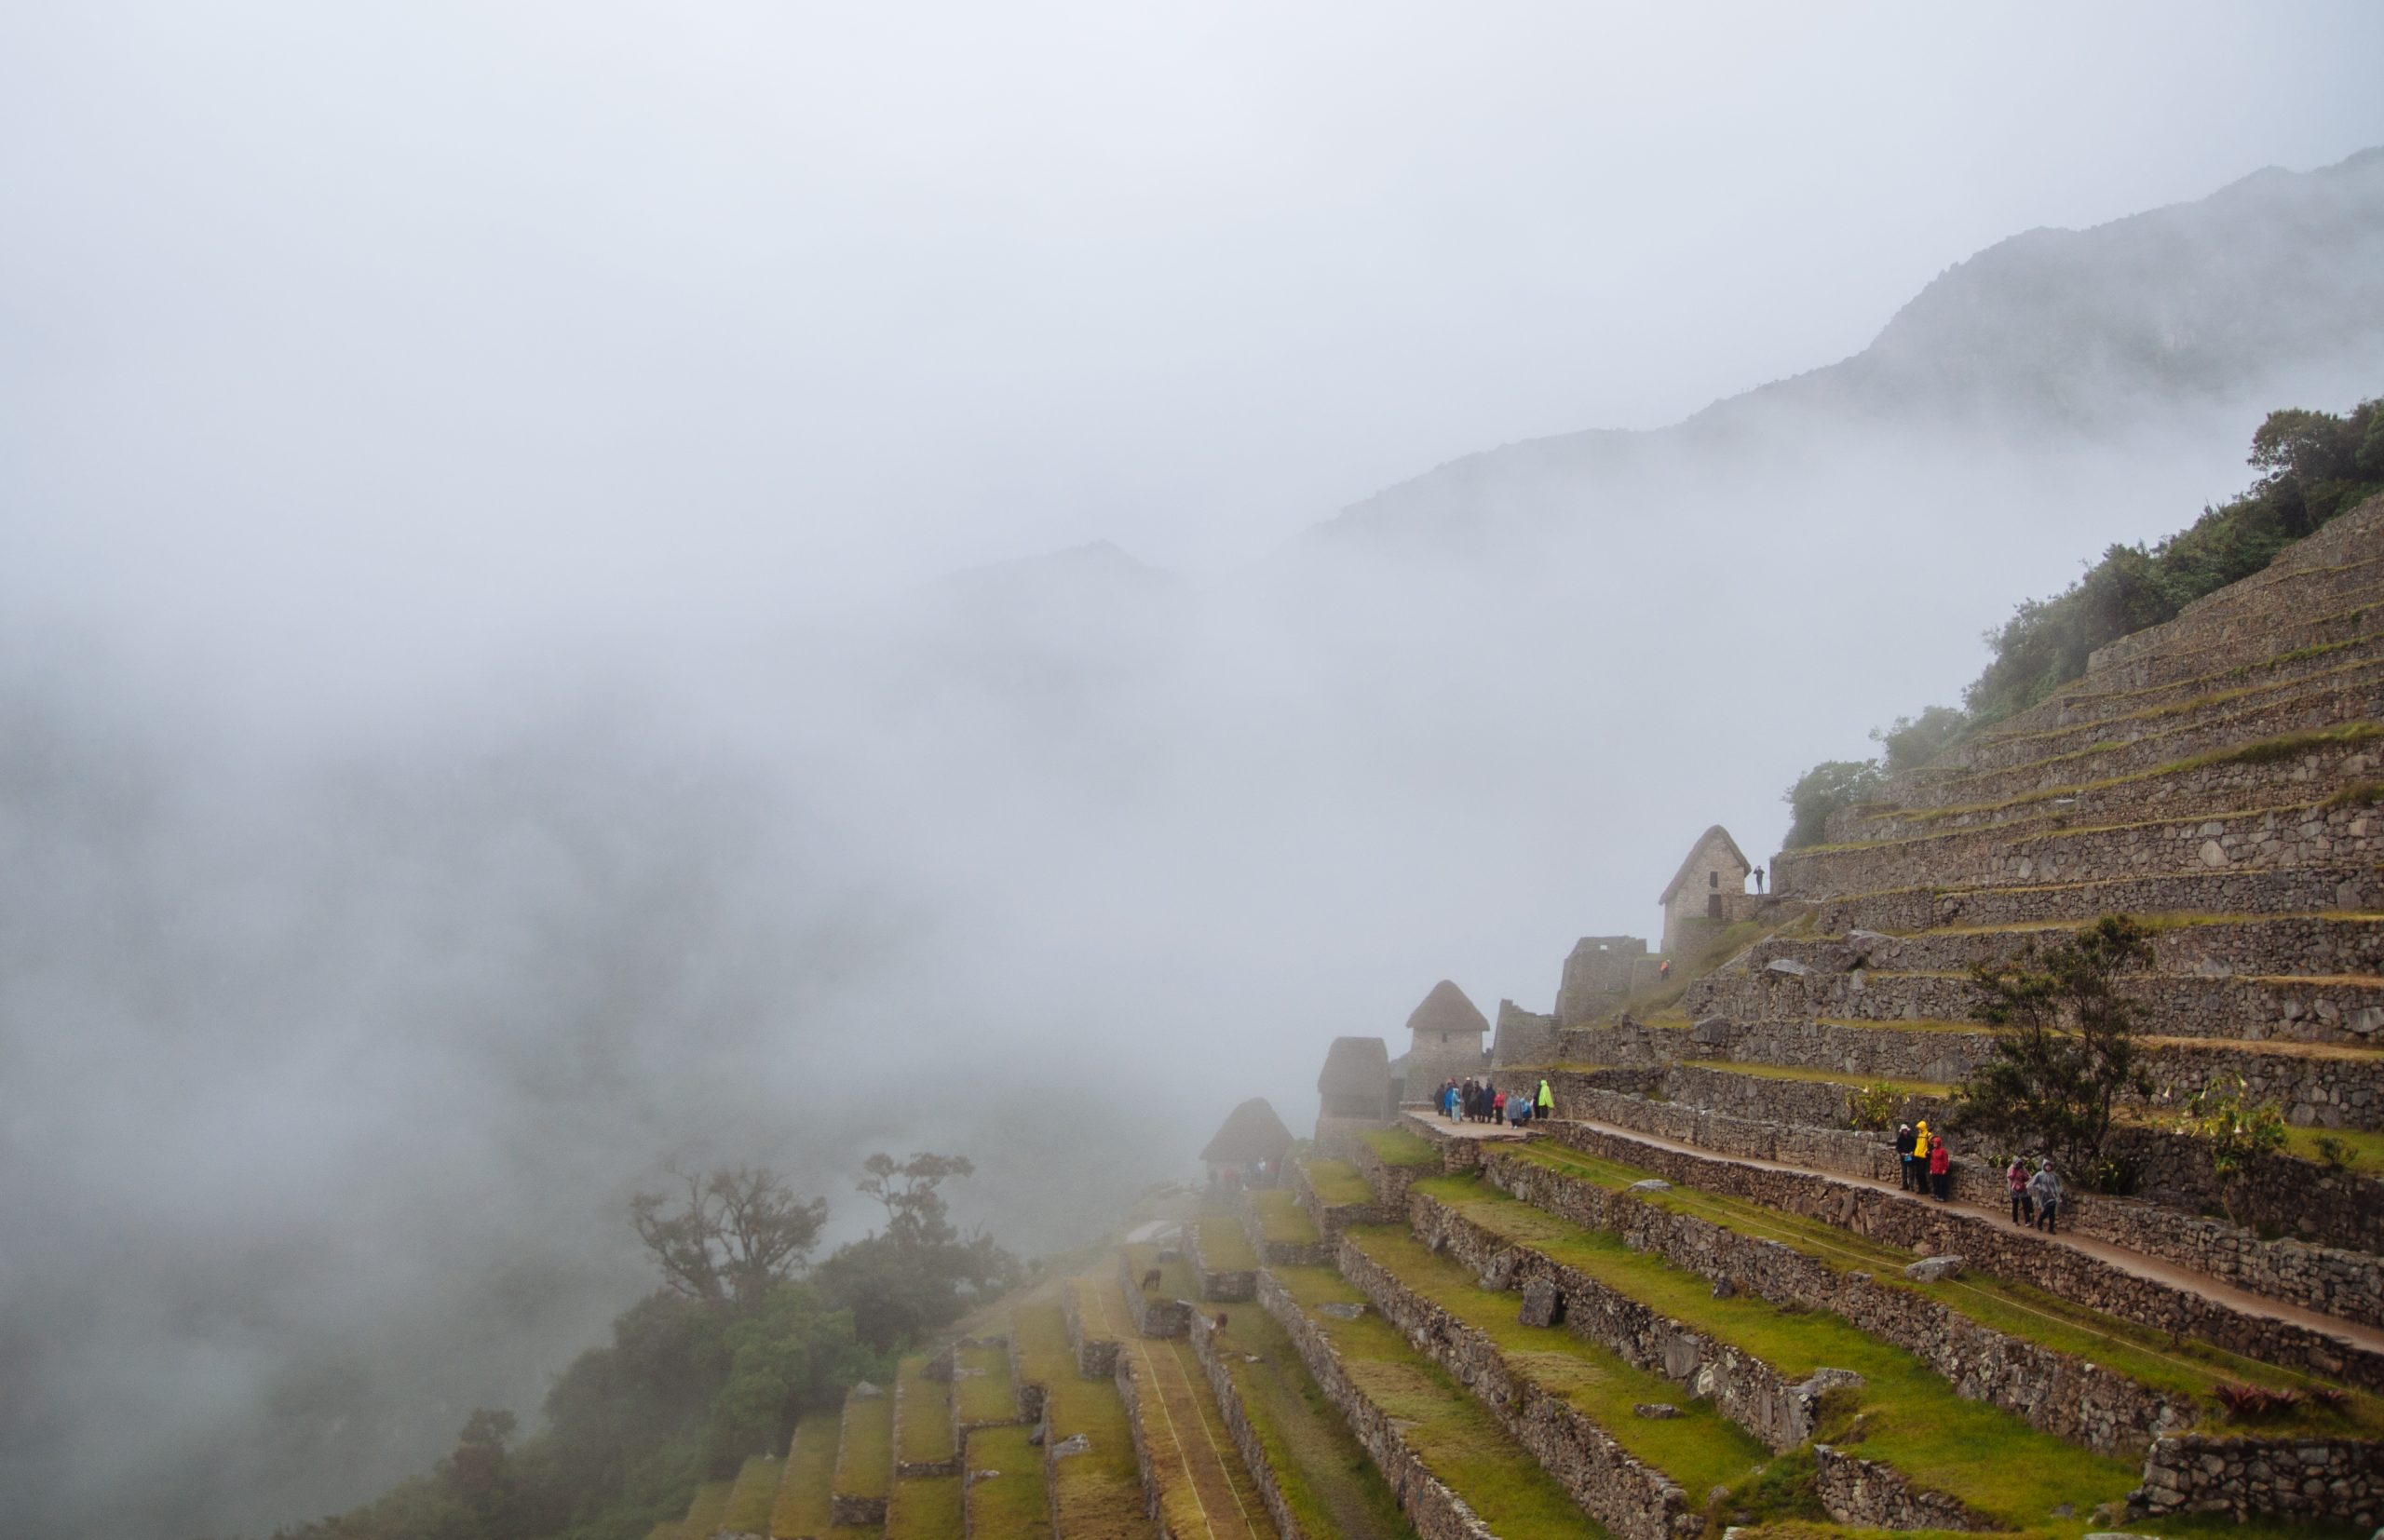 The lush vegetation can be attributed to the humid atmosphere in The Machu Picchu Complex